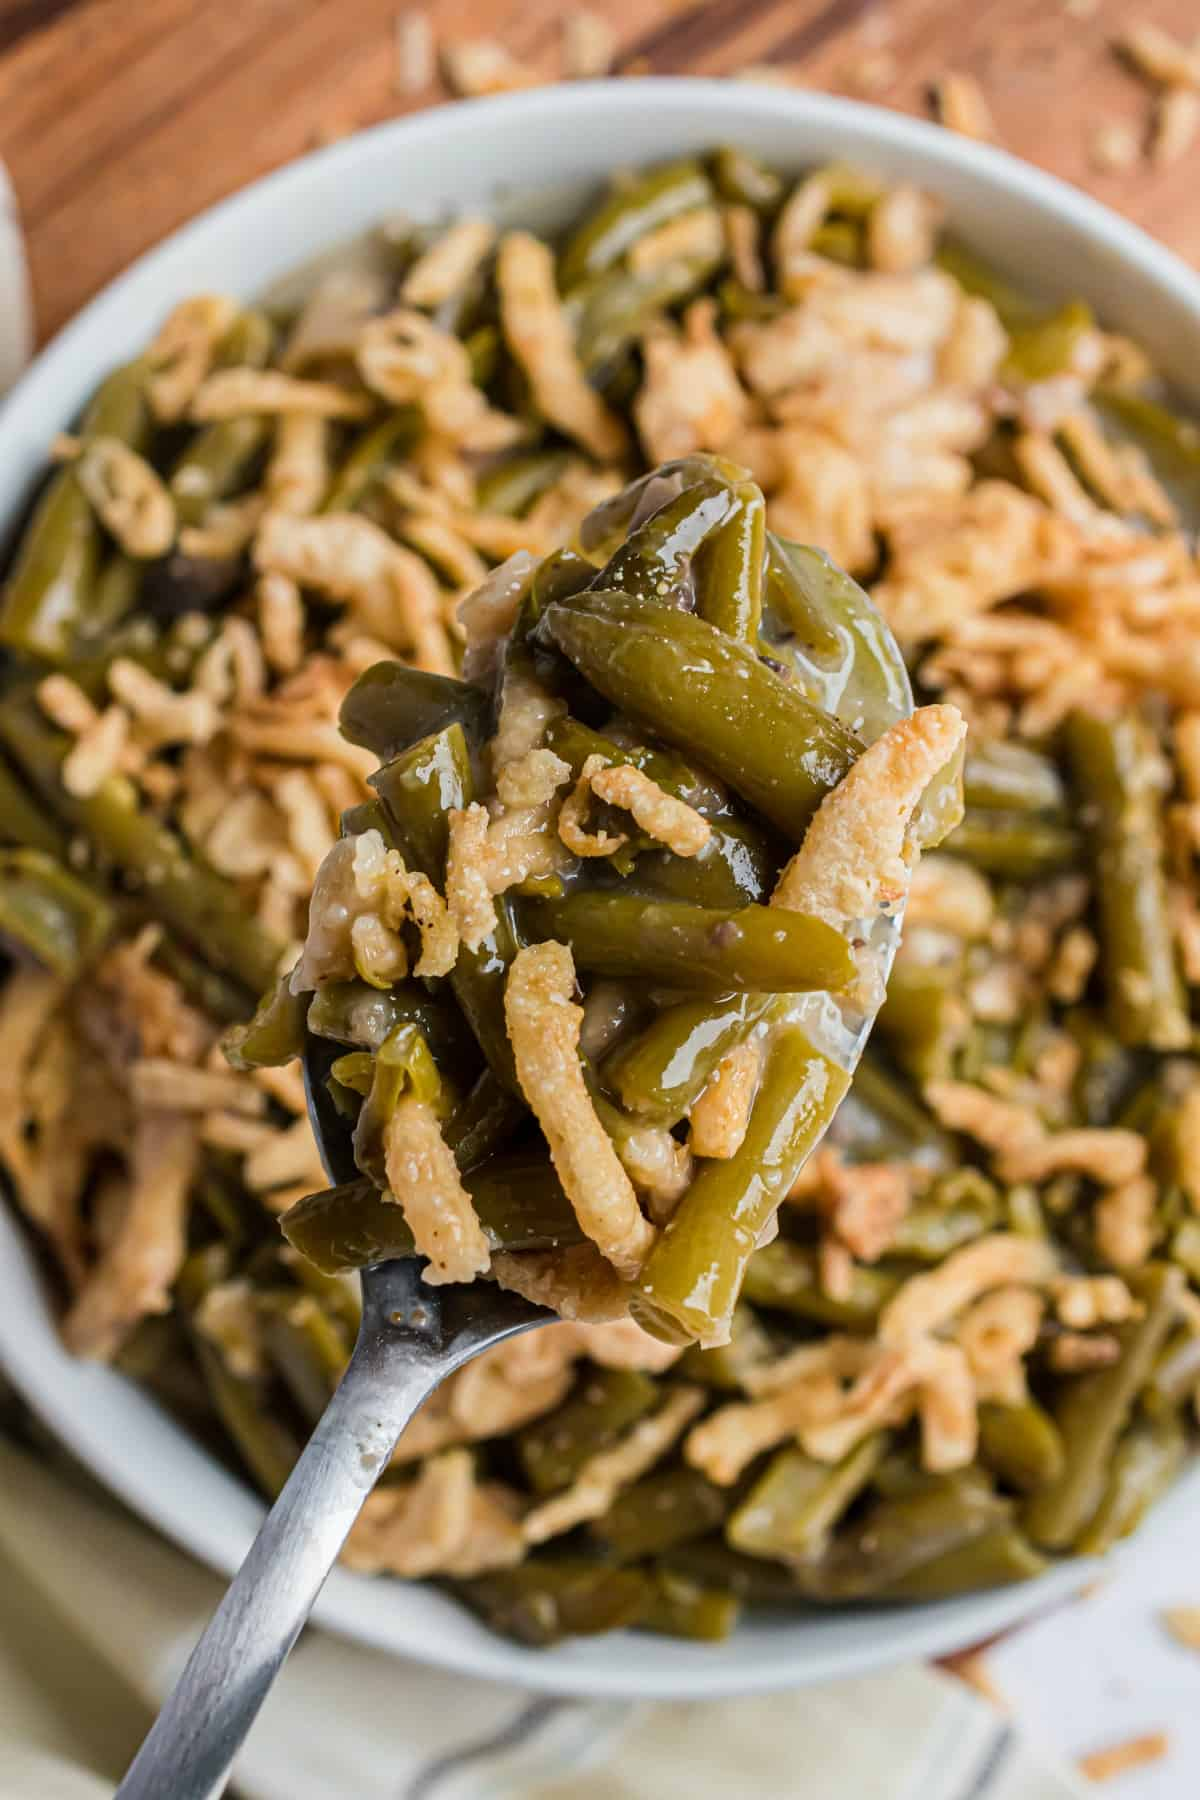 Serving dish with green bean casserole and french fried onions.